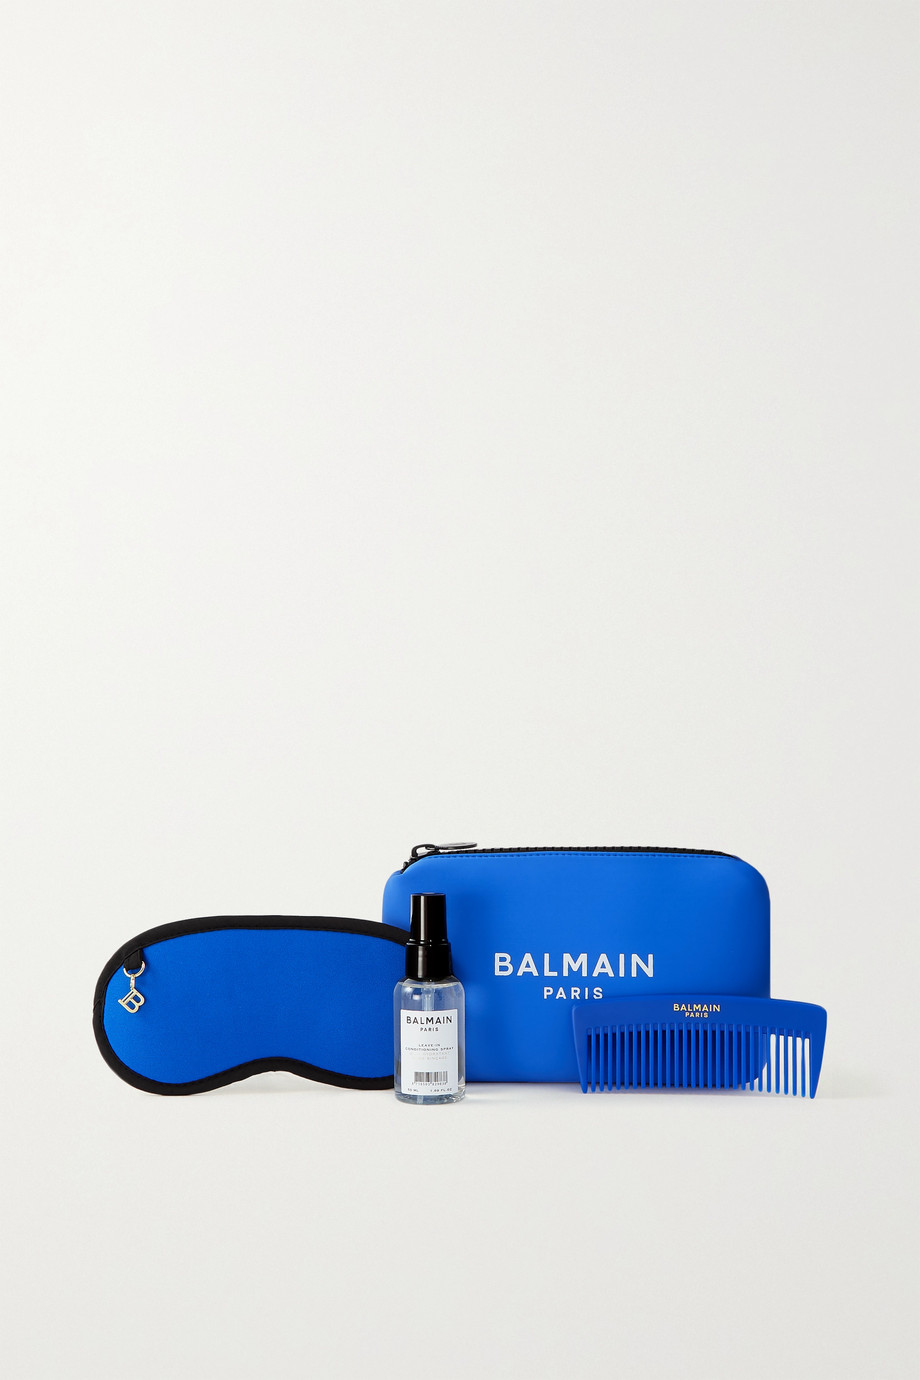 BALMAIN PARIS HAIR COUTURE Cosmetic Bag Set - Blue